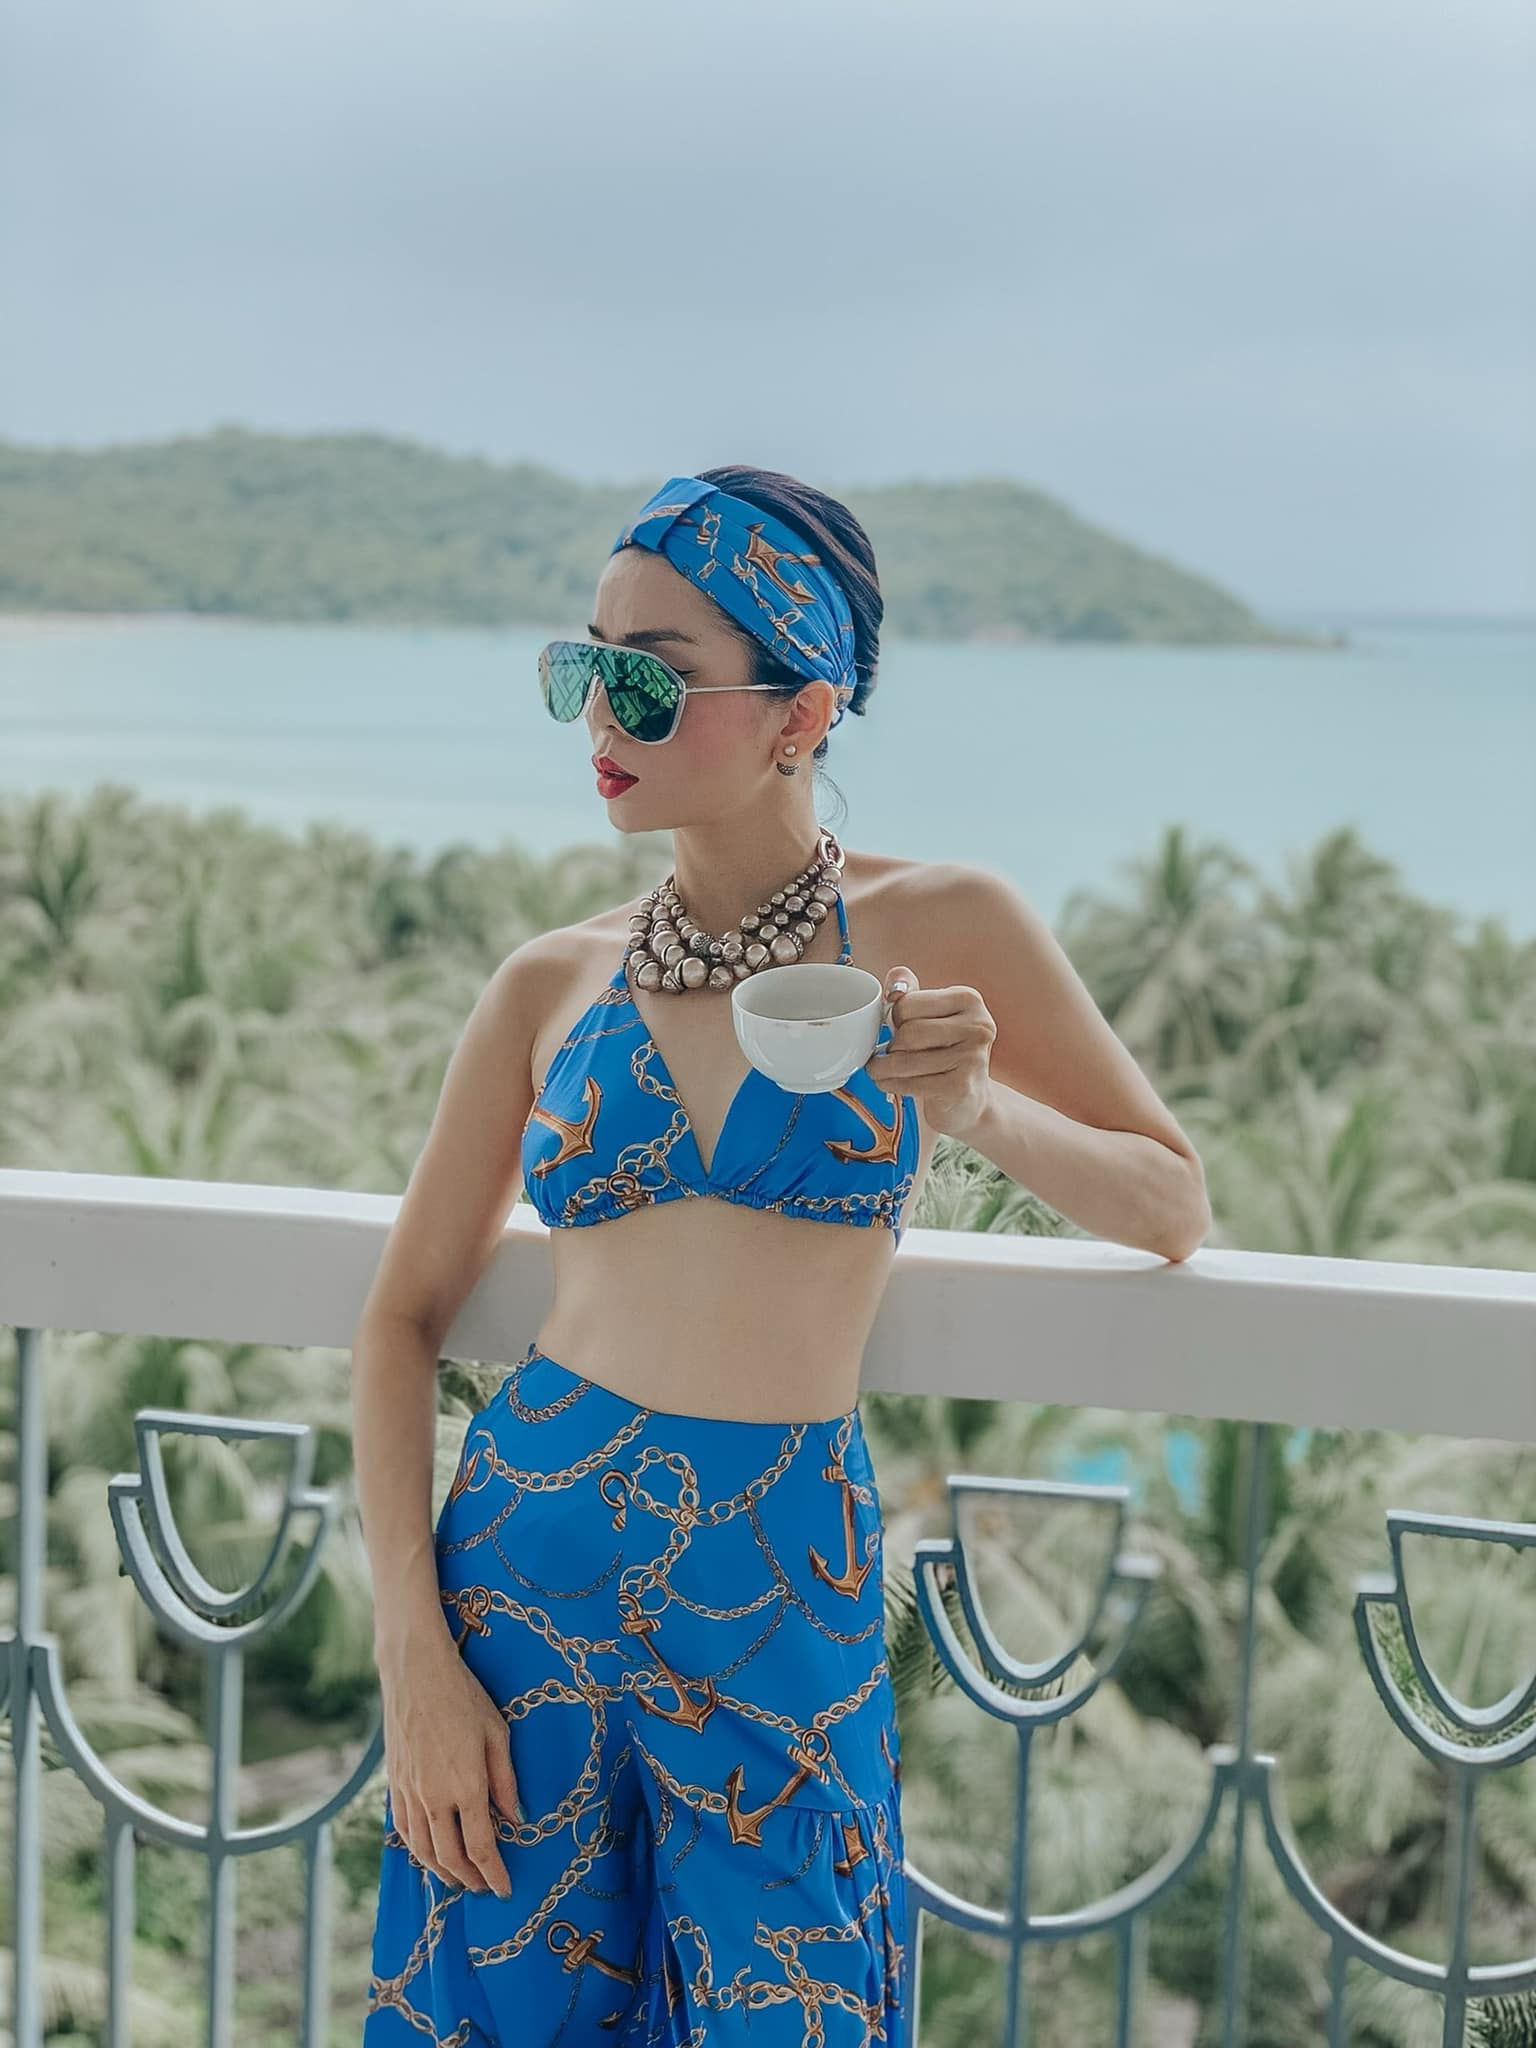 Le Quyen responded sharply when being mocked 'shameless' showing off her body at the age of U40 6